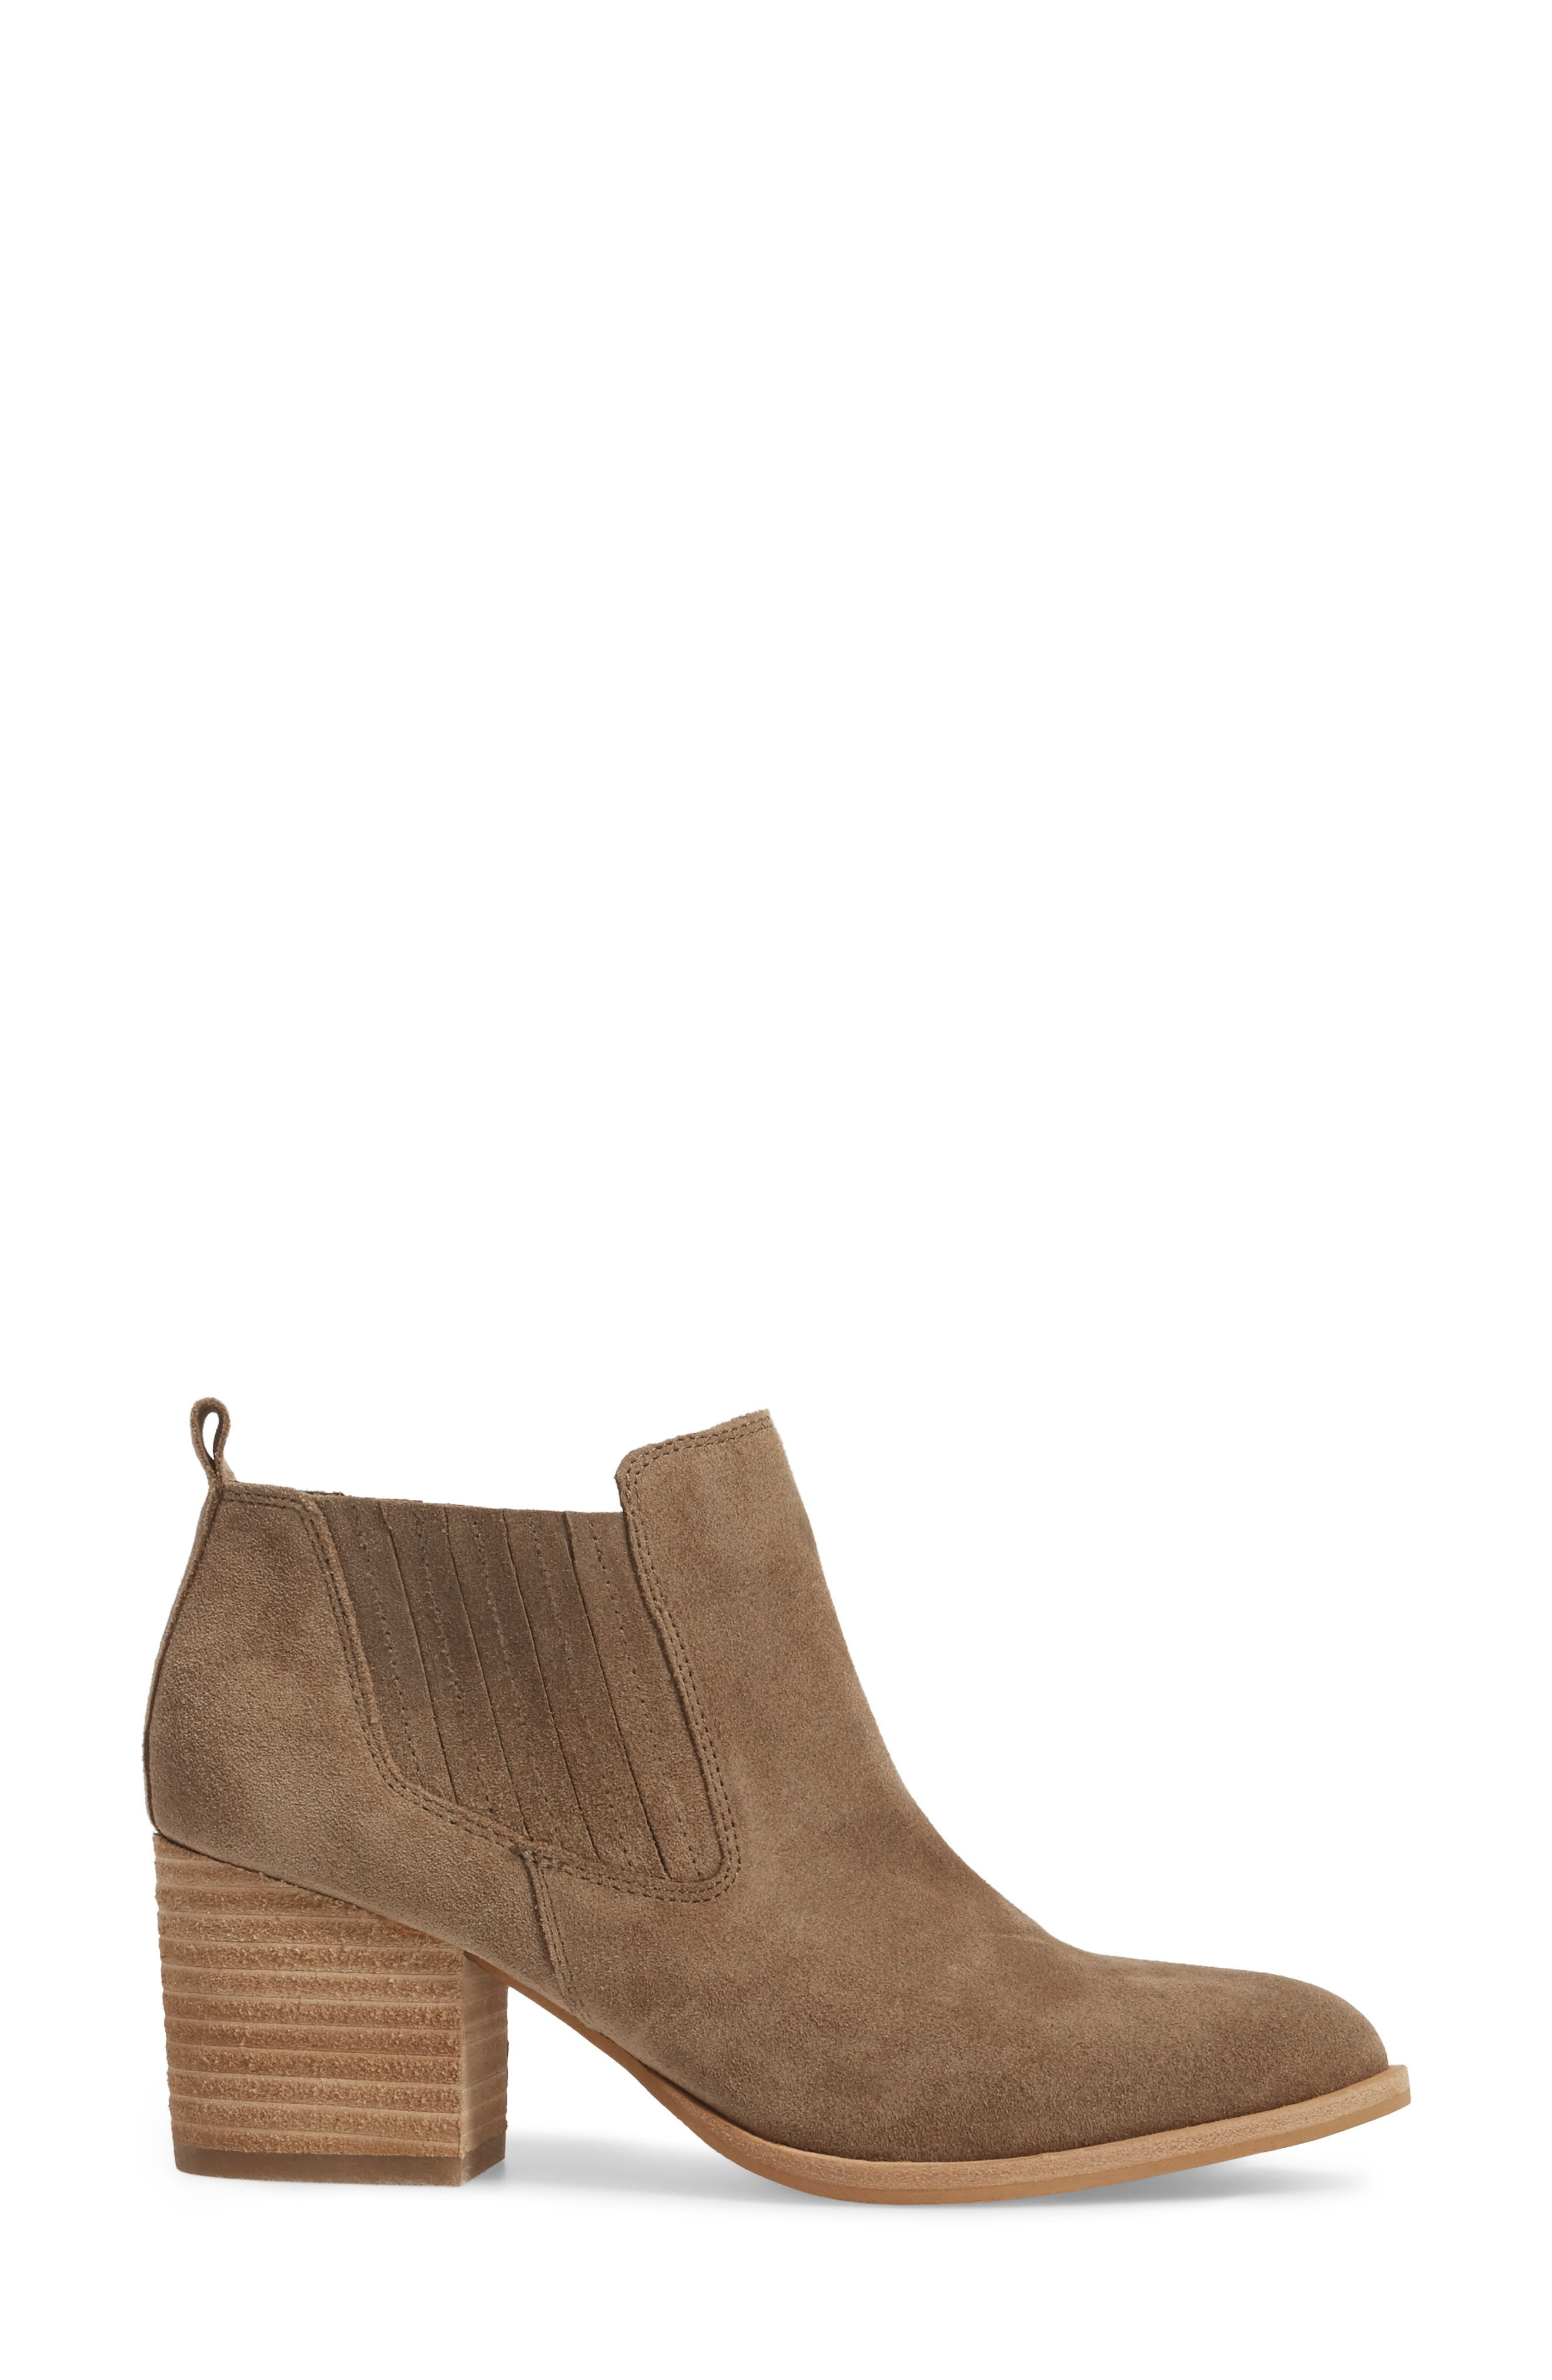 ISOLÁ, Olicia Gored Bootie, Alternate thumbnail 3, color, MARMOTTA LIGHT GREY SUEDE